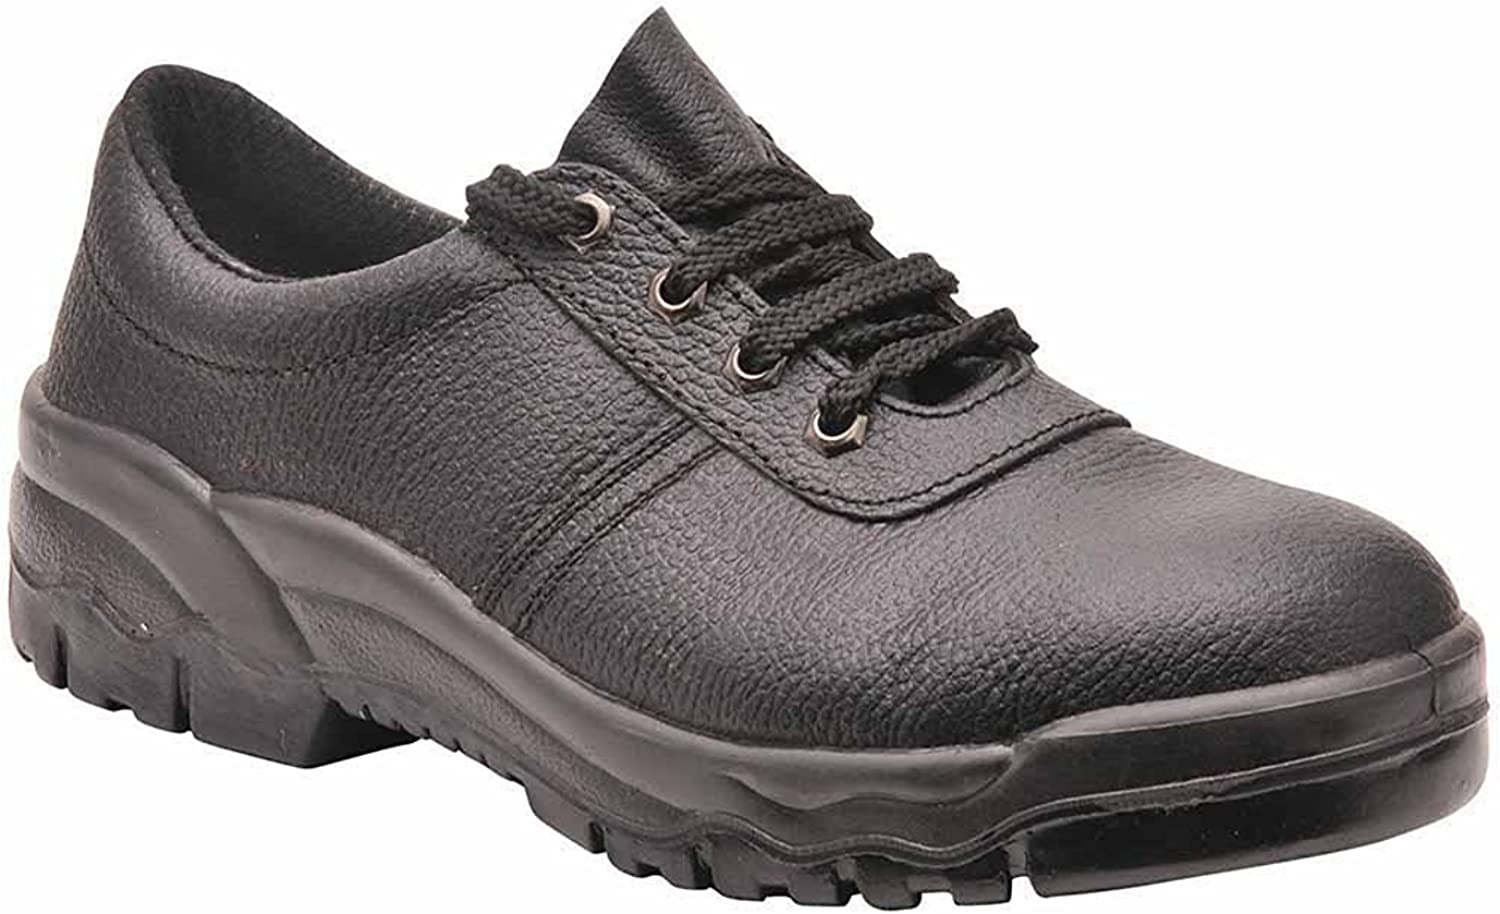 safety work shoes near me where can i